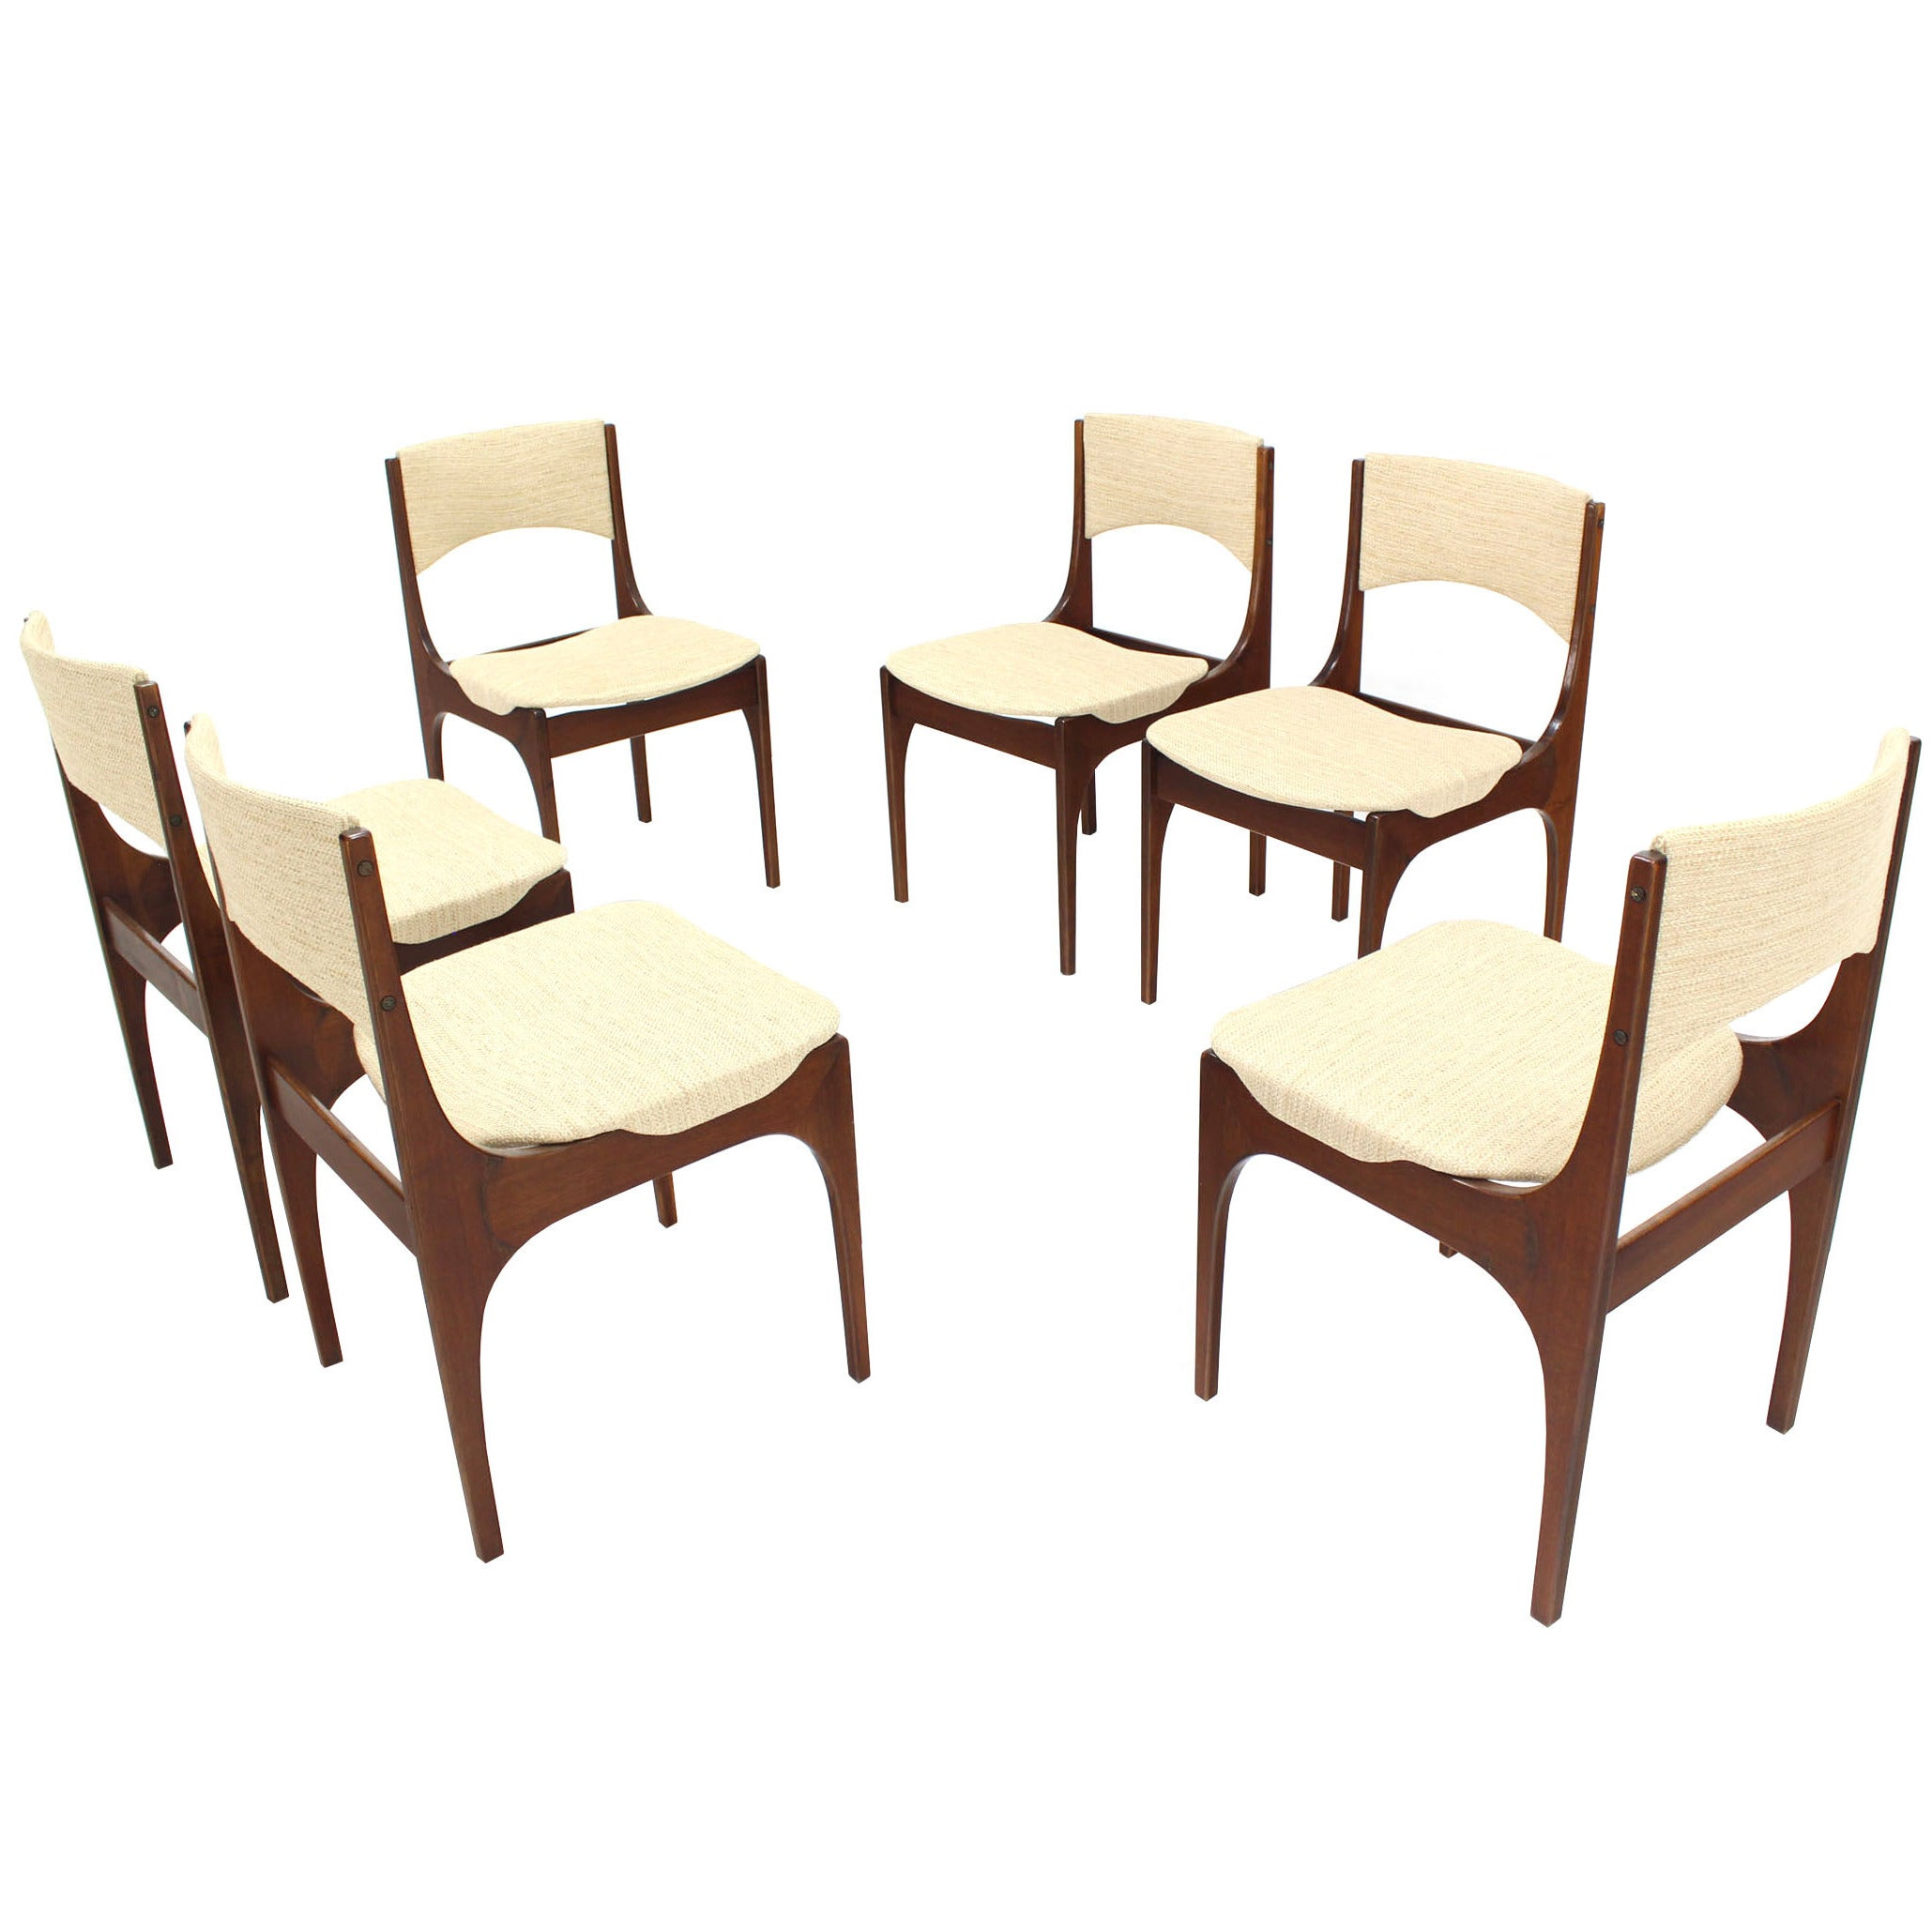 Set of Six Italian Modern Dining Chairs with New Upholstery